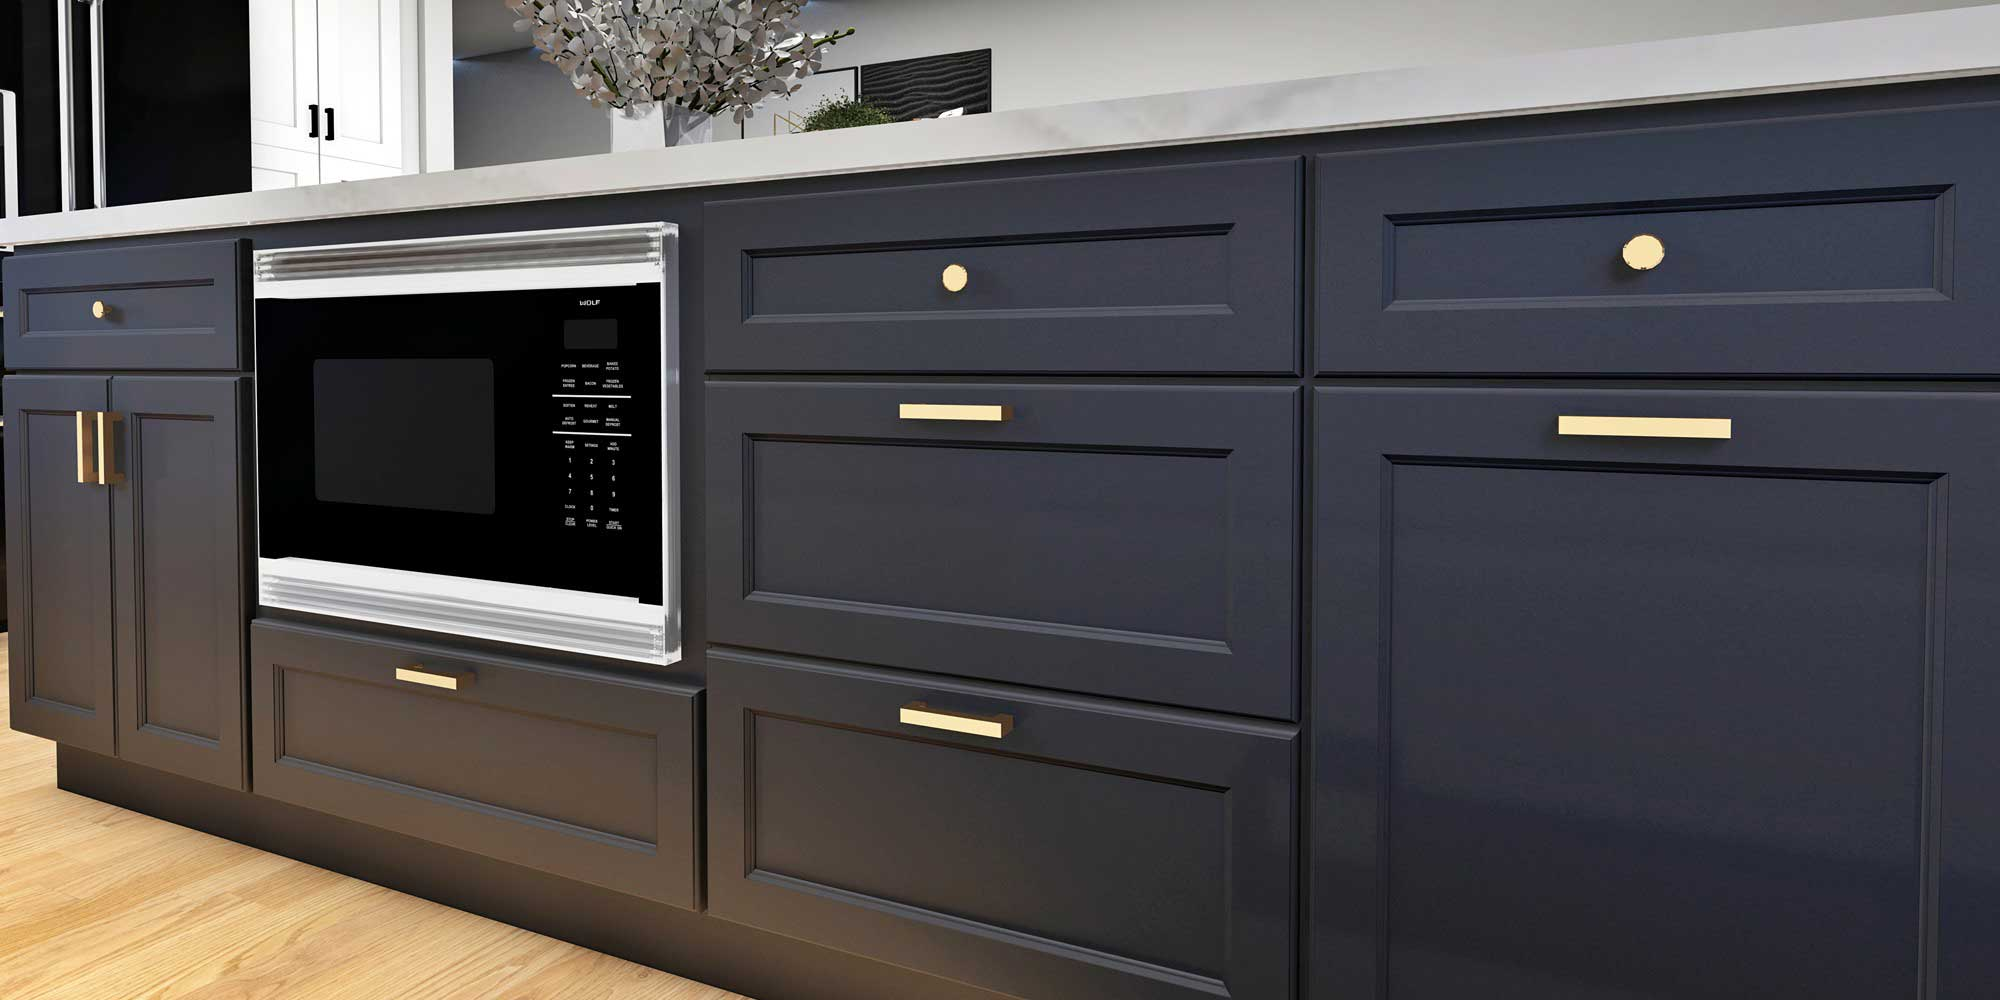 Charcoal kitchen cabinets with silver and black microwave and grey marble countertop